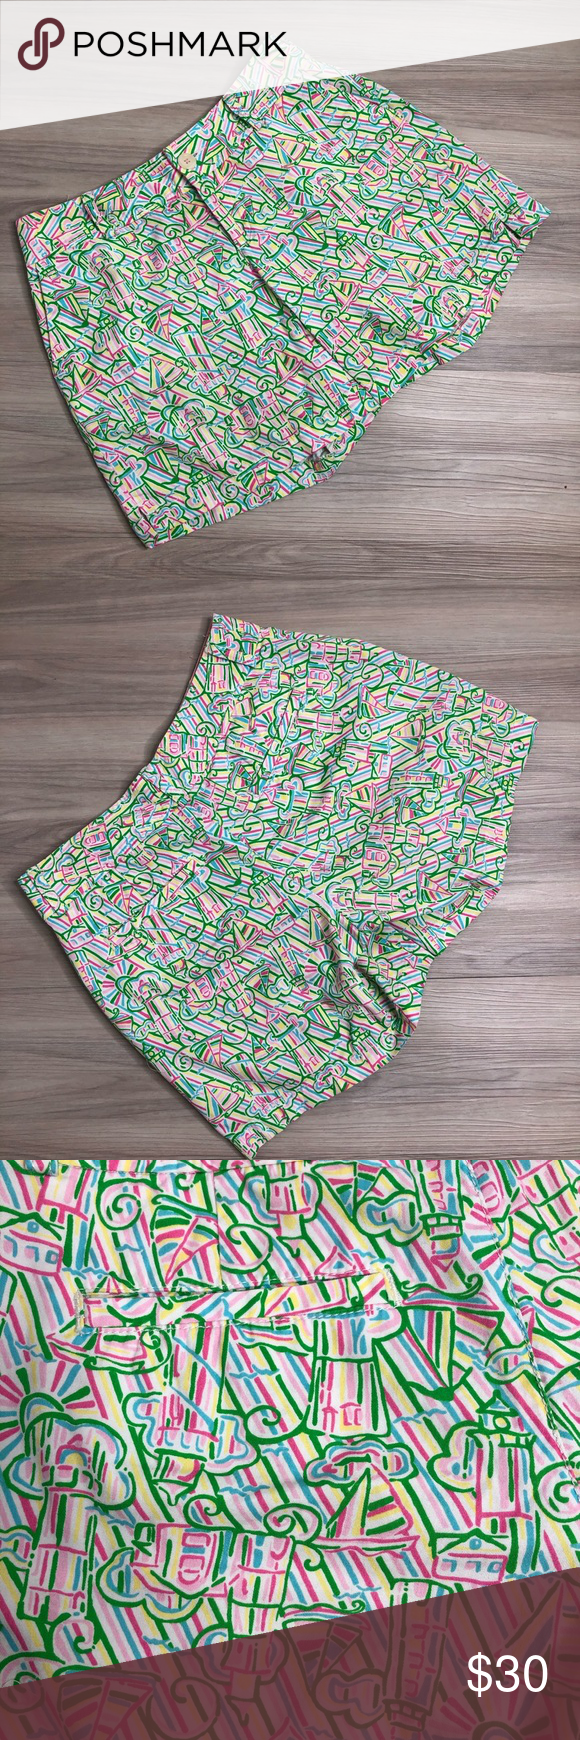 Lilly Pulitzer pink & green print shorts, size 6 L